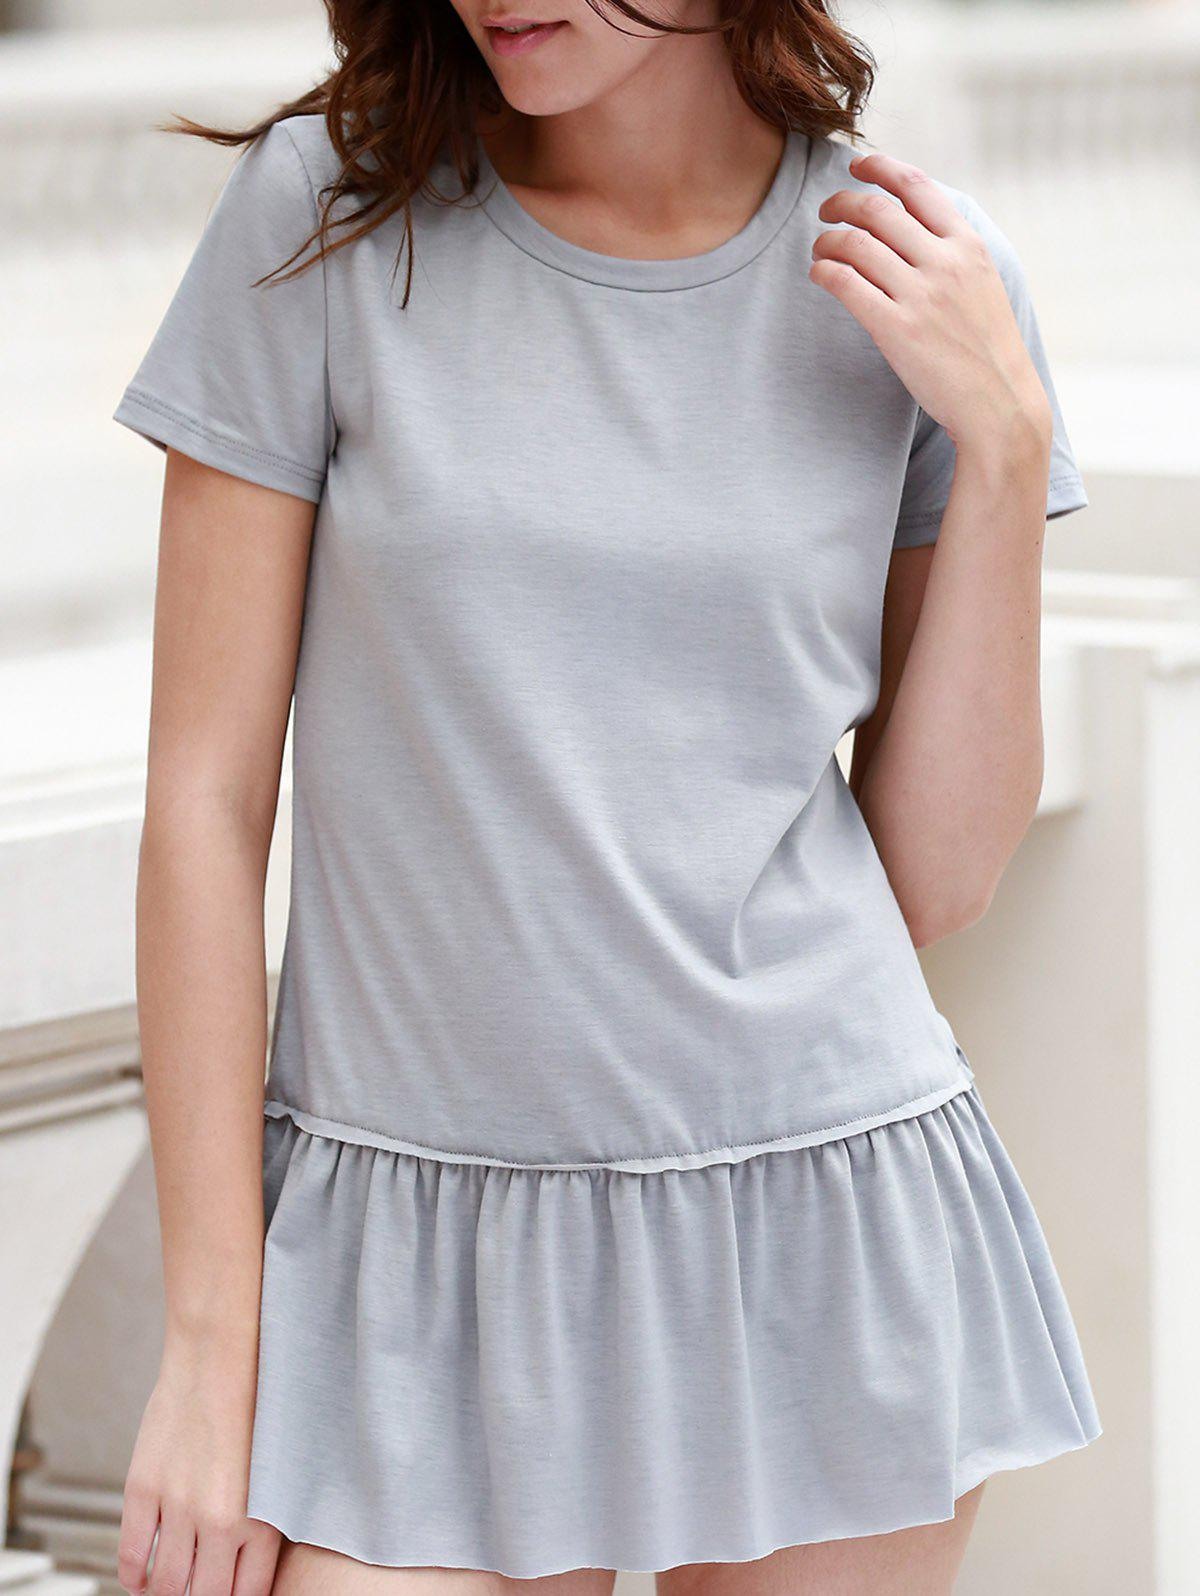 Stylish Round Neck Short Sleeve Solid Color Pleated Women's T-Shirt